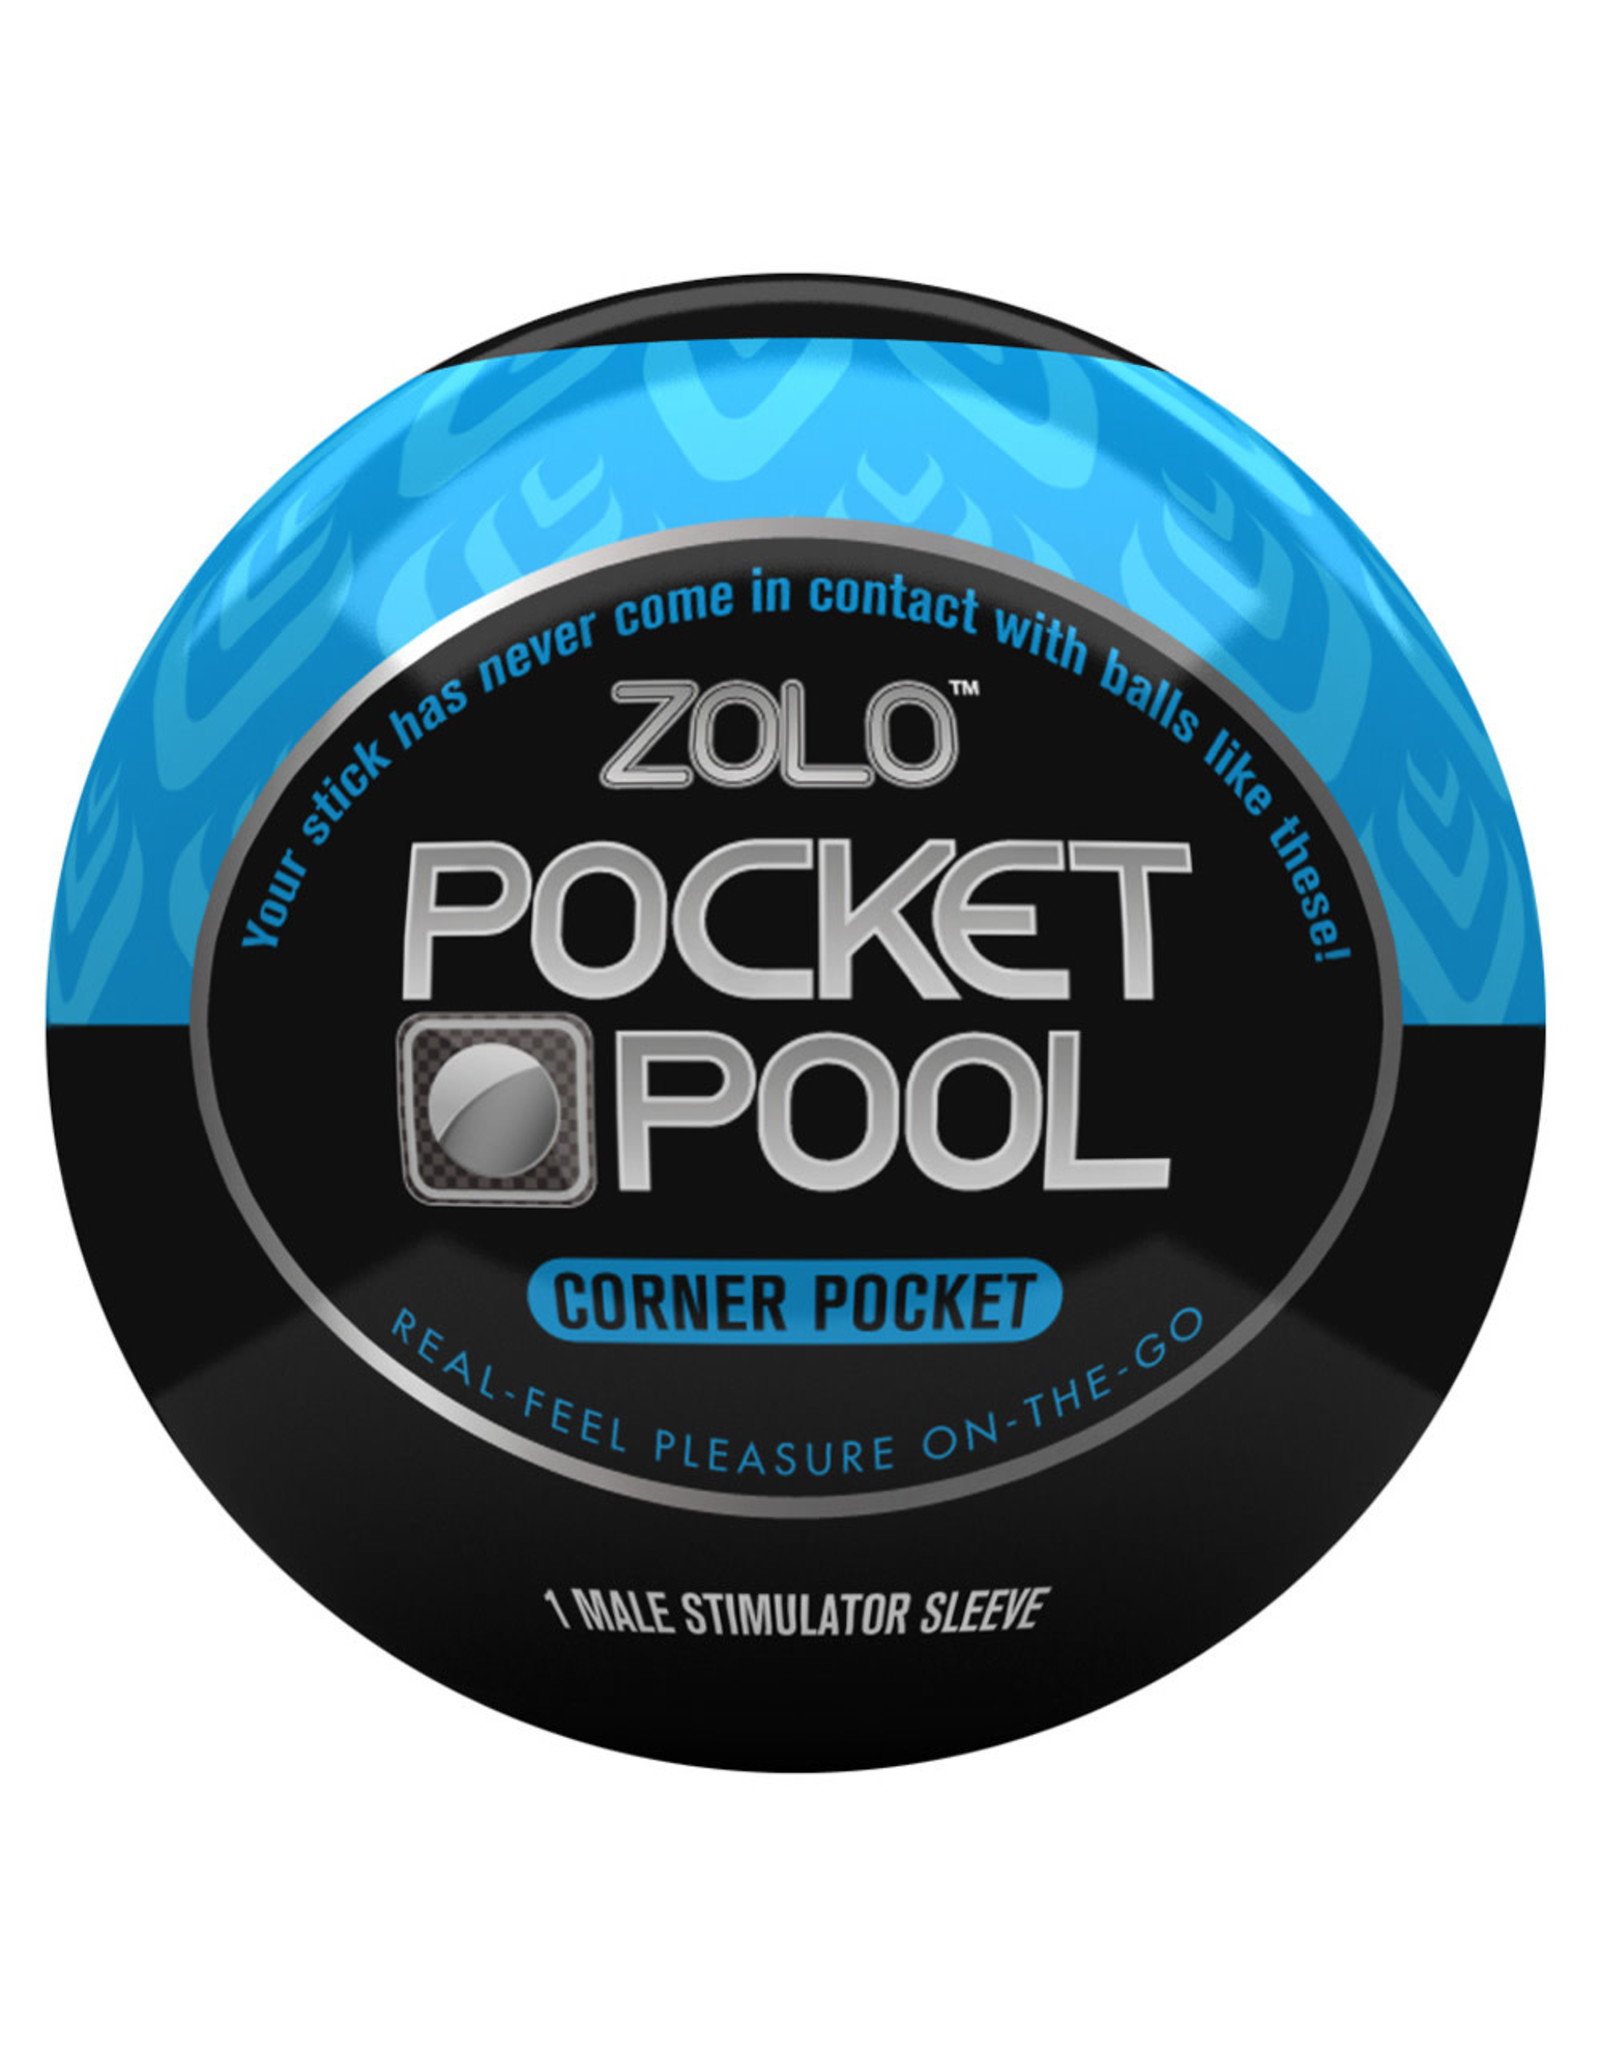 Zolo Pocket Pool Corner Pocket Travel Masturbator